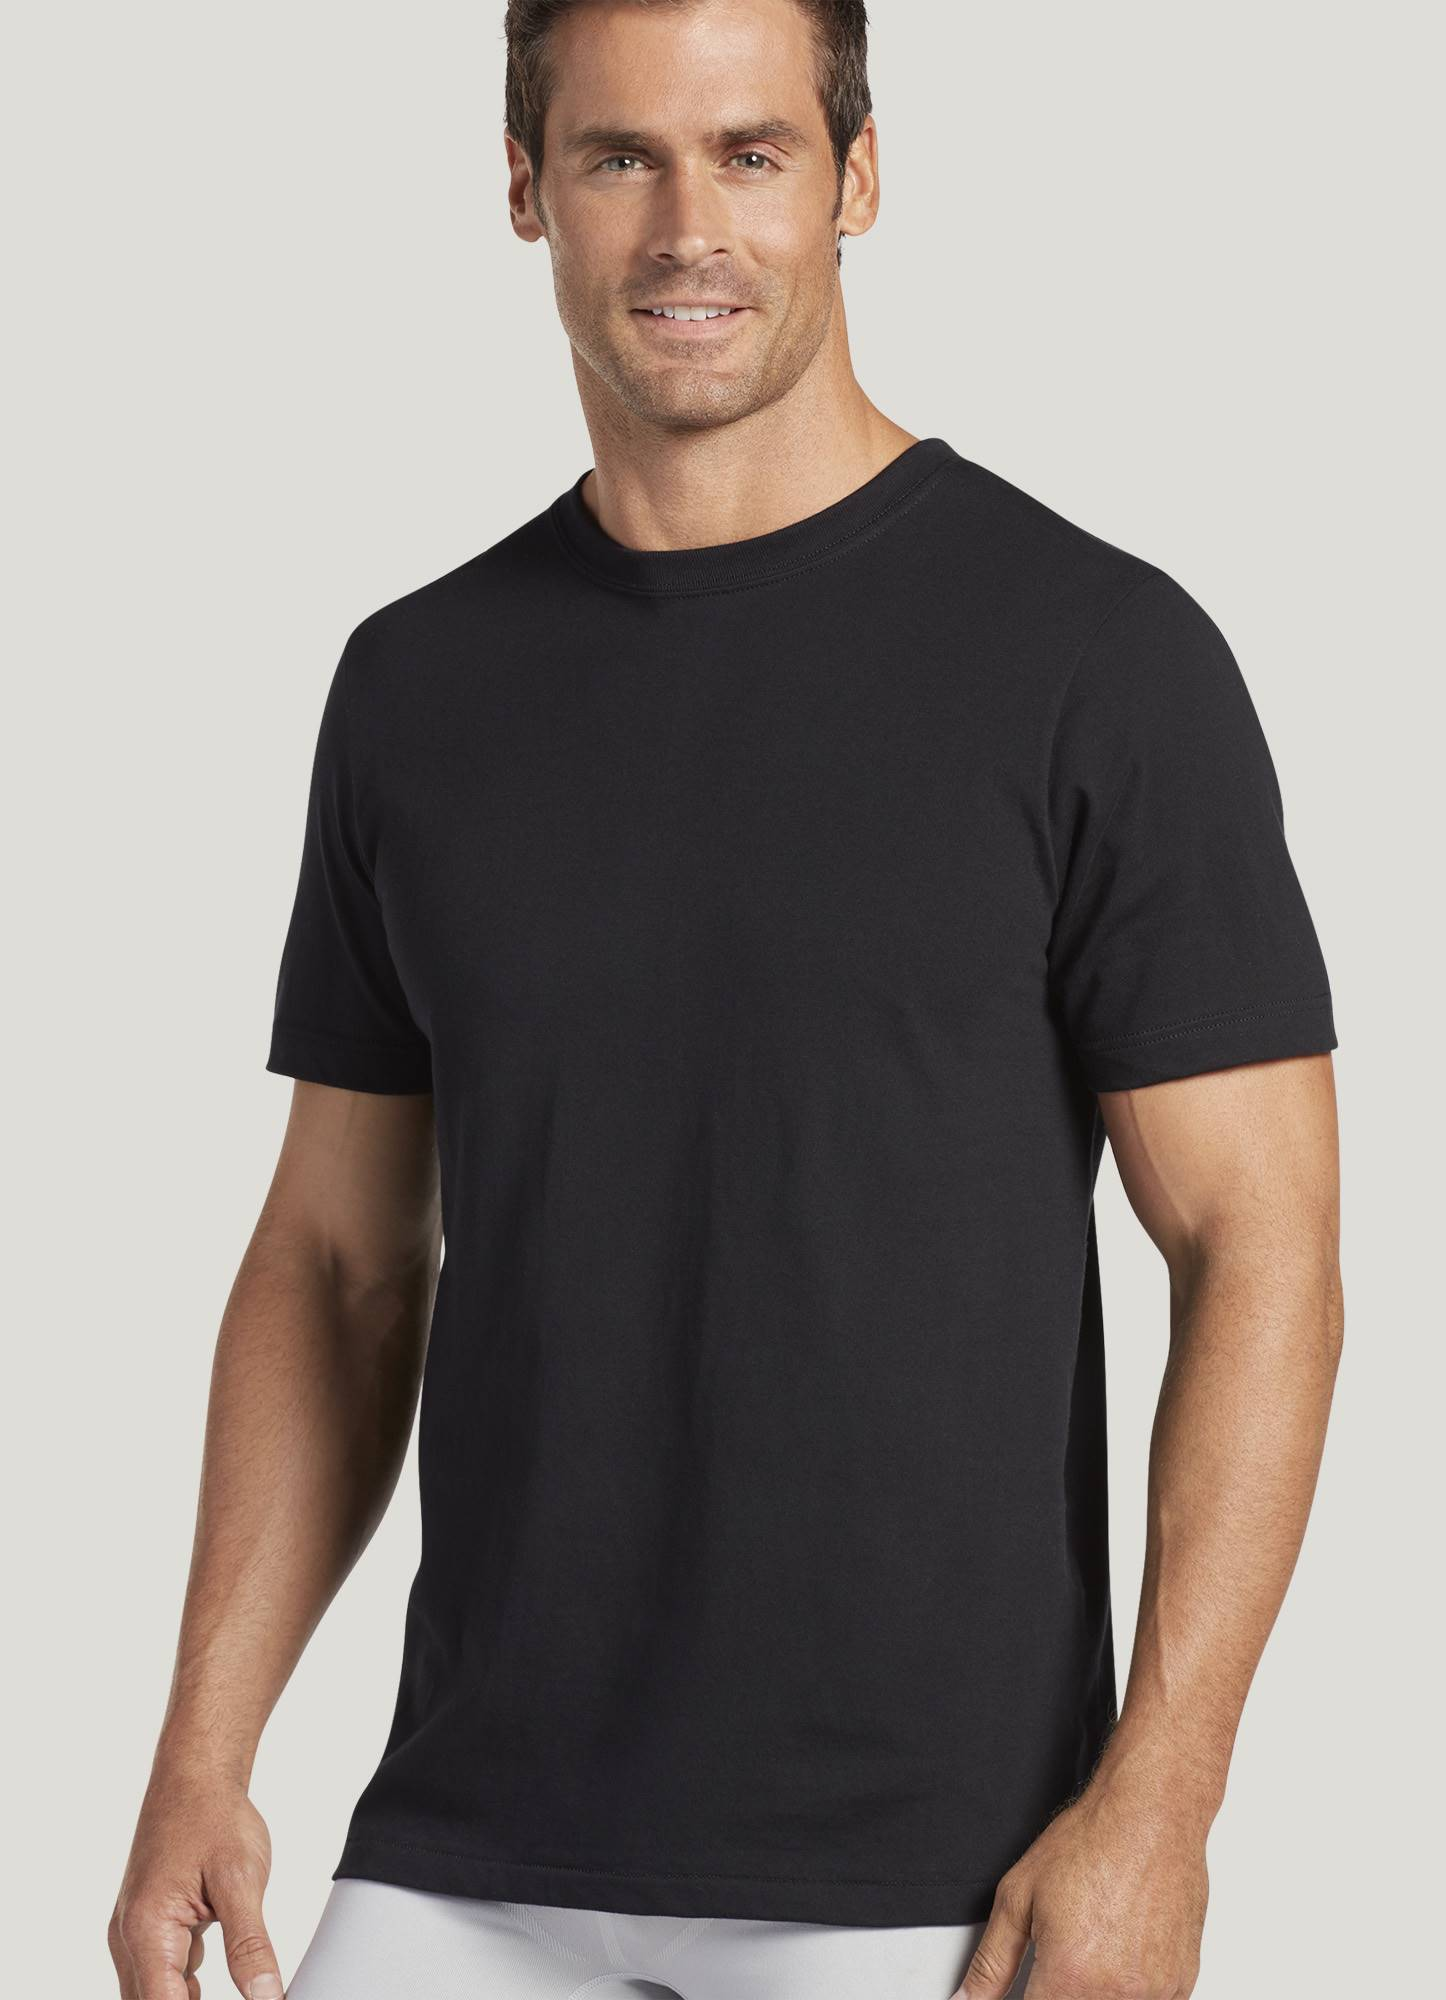 Black t shirt round neck - Hover To Zoom